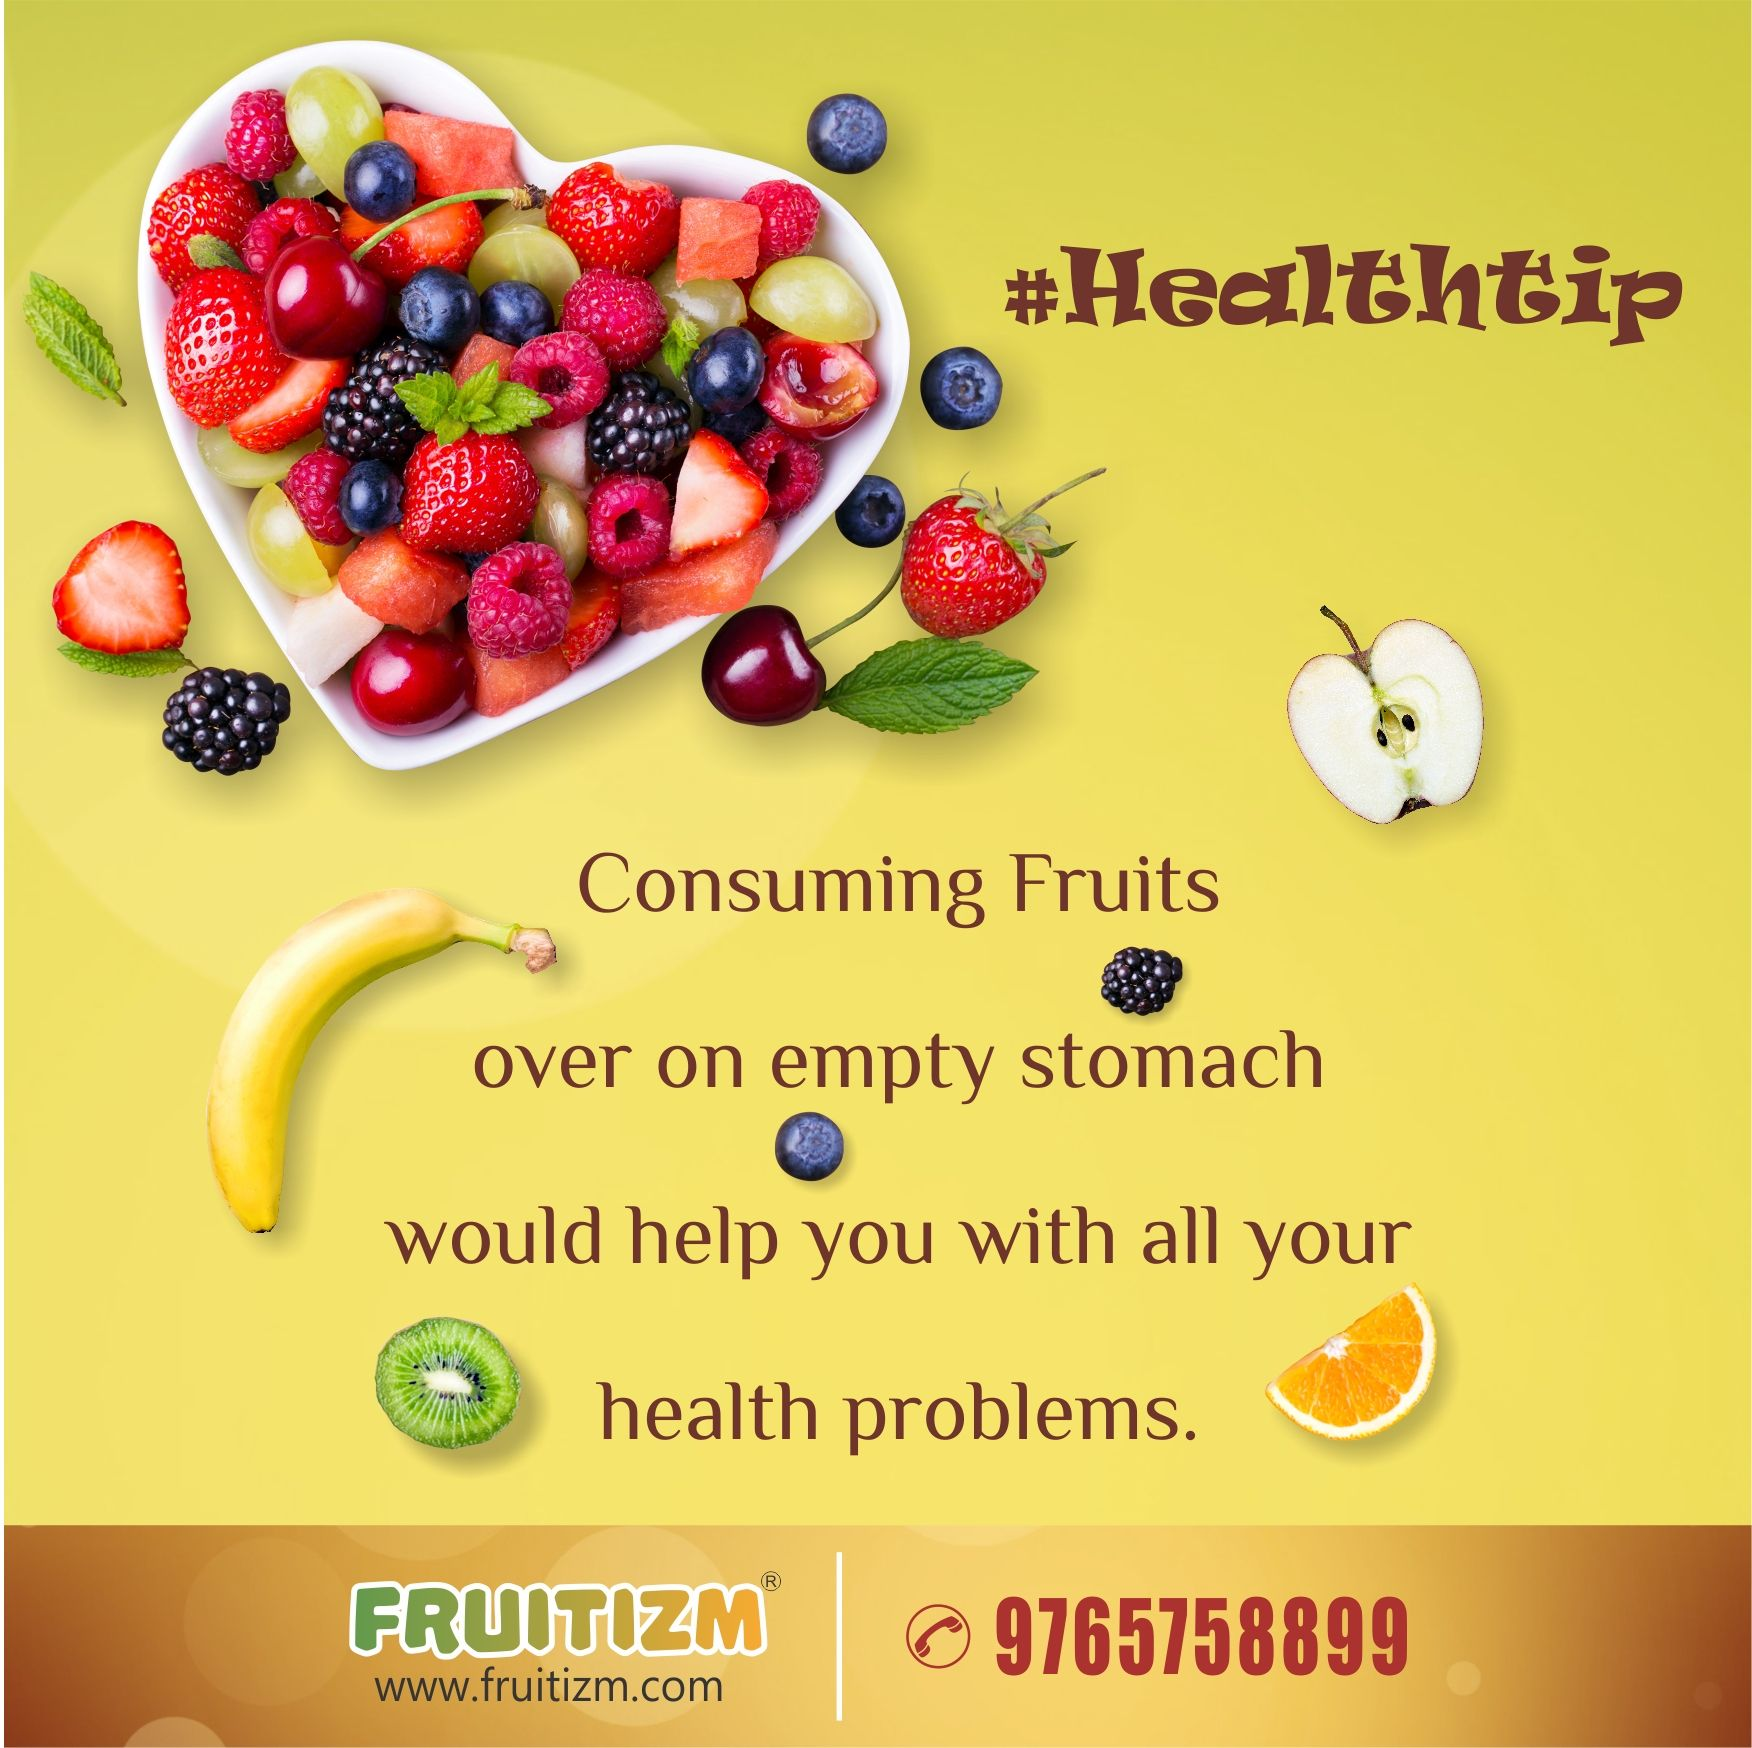 Eating Fruit Is Not A Crime So You Are Free To Order Healthtip